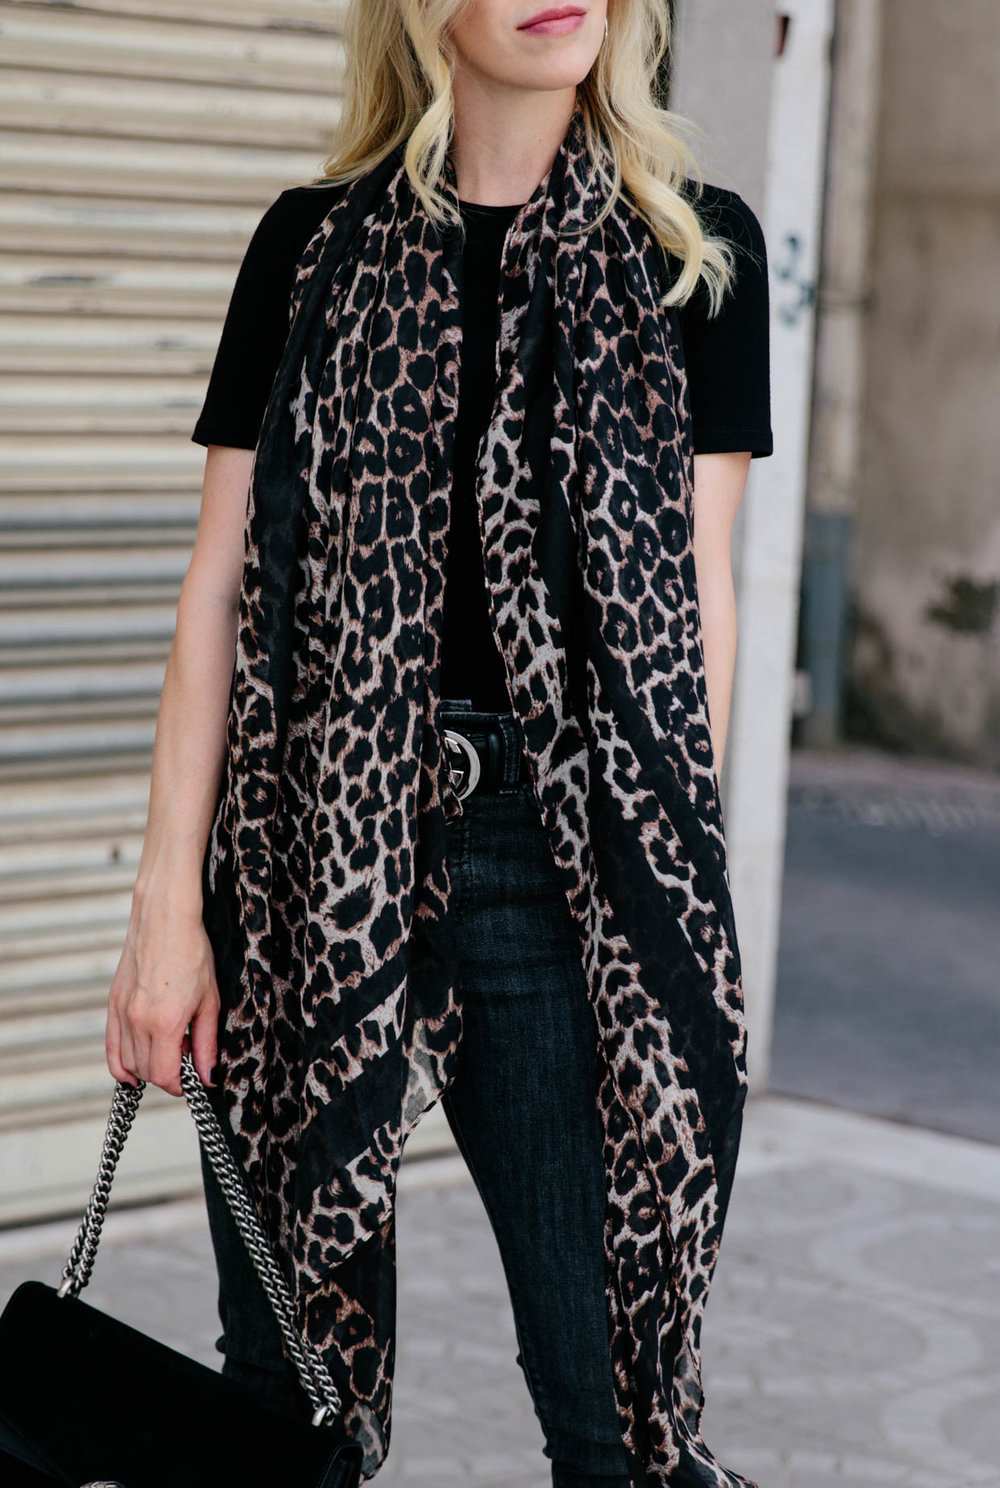 How-to-wear-a-leopard-print-scarf-for-fall-fall-2018-trends-leopard-print.jpg